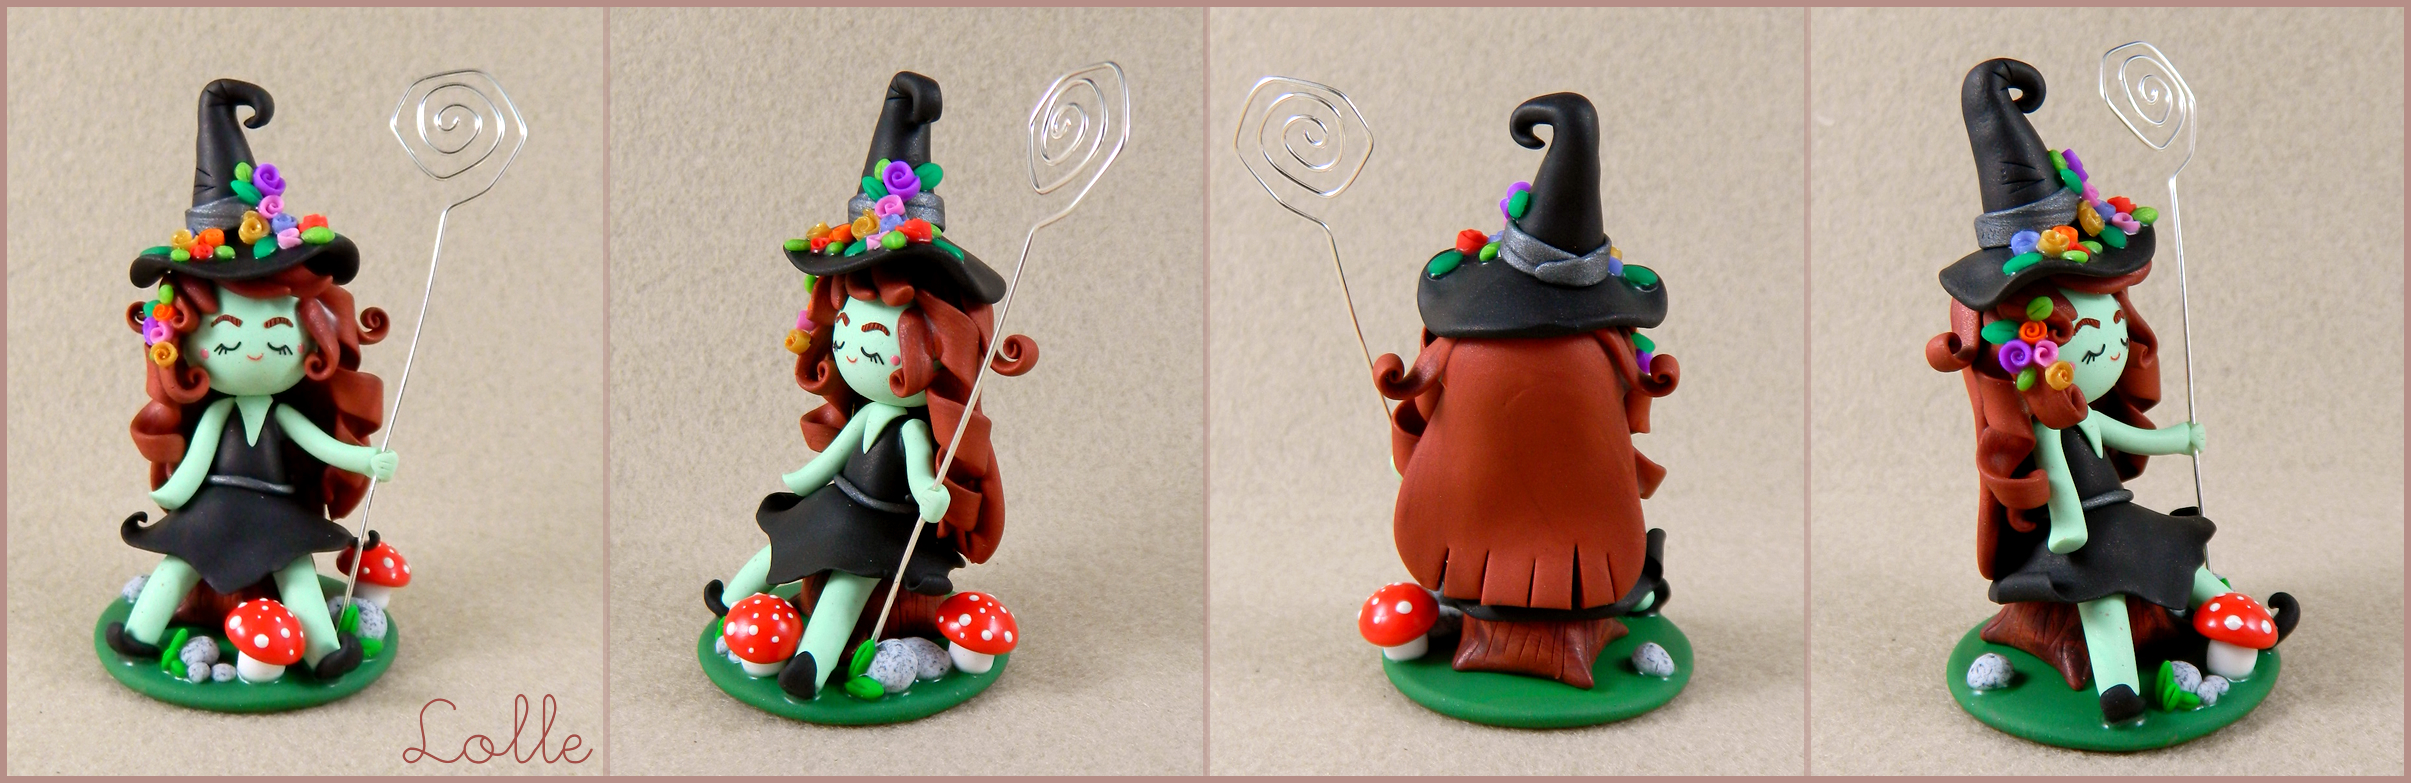 Fimo Witch by LolleBijoux